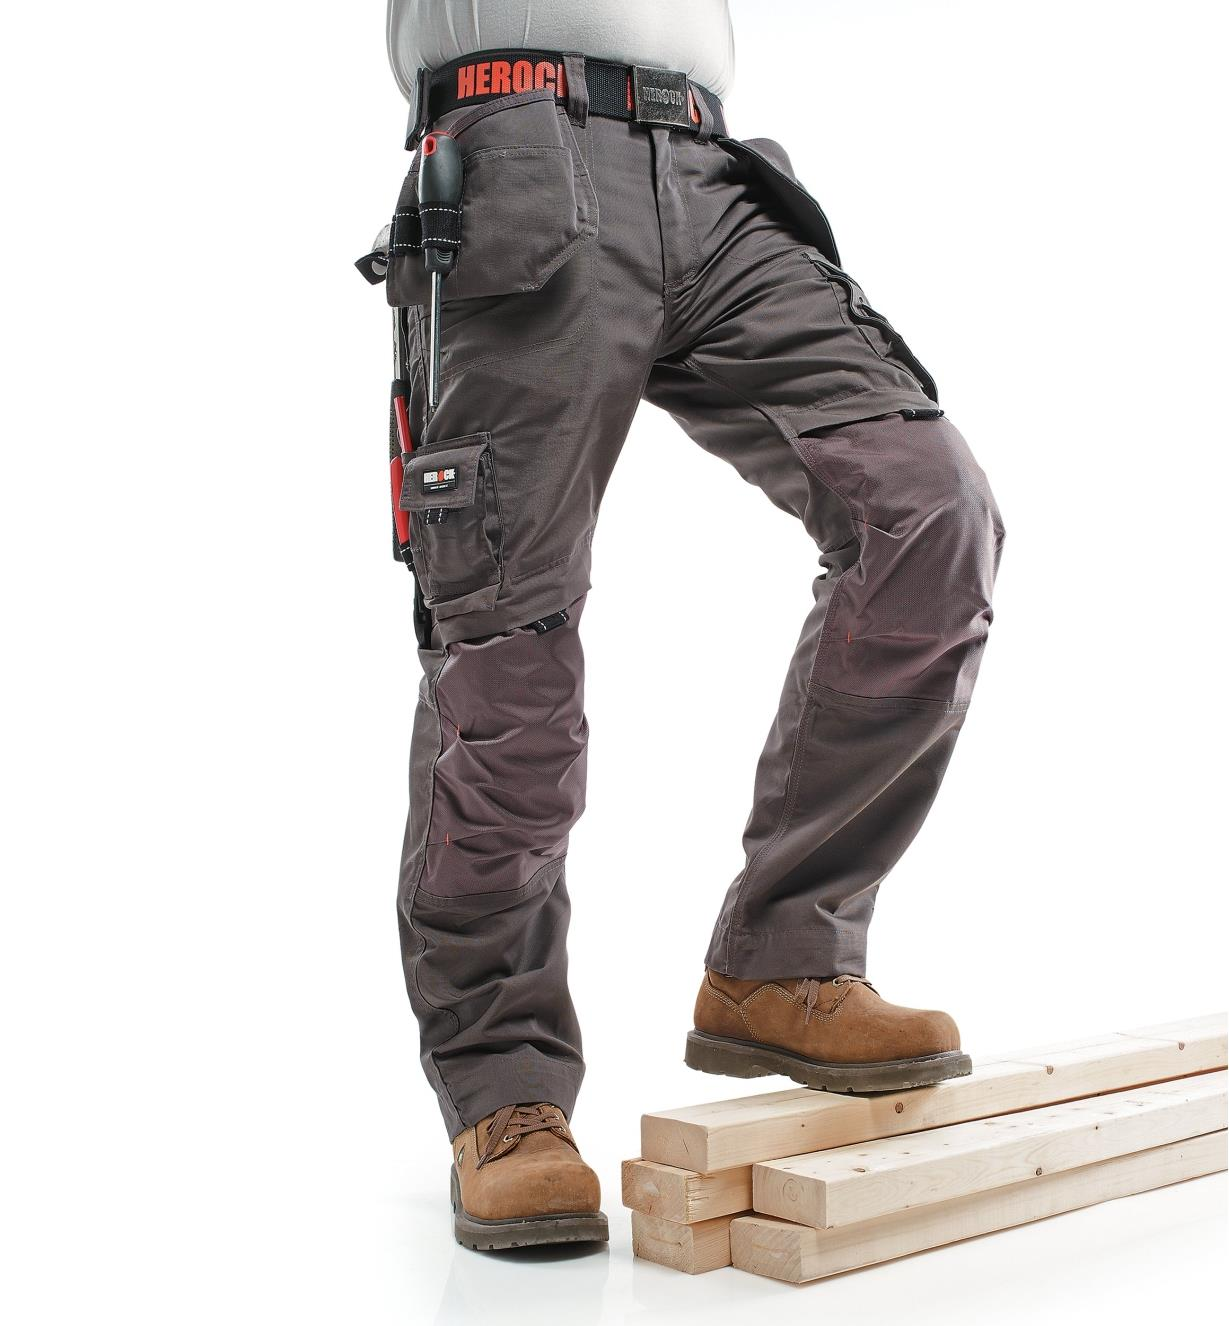 A man poses in Gray Medium-Weight Pants with his foot on a stack of lumber